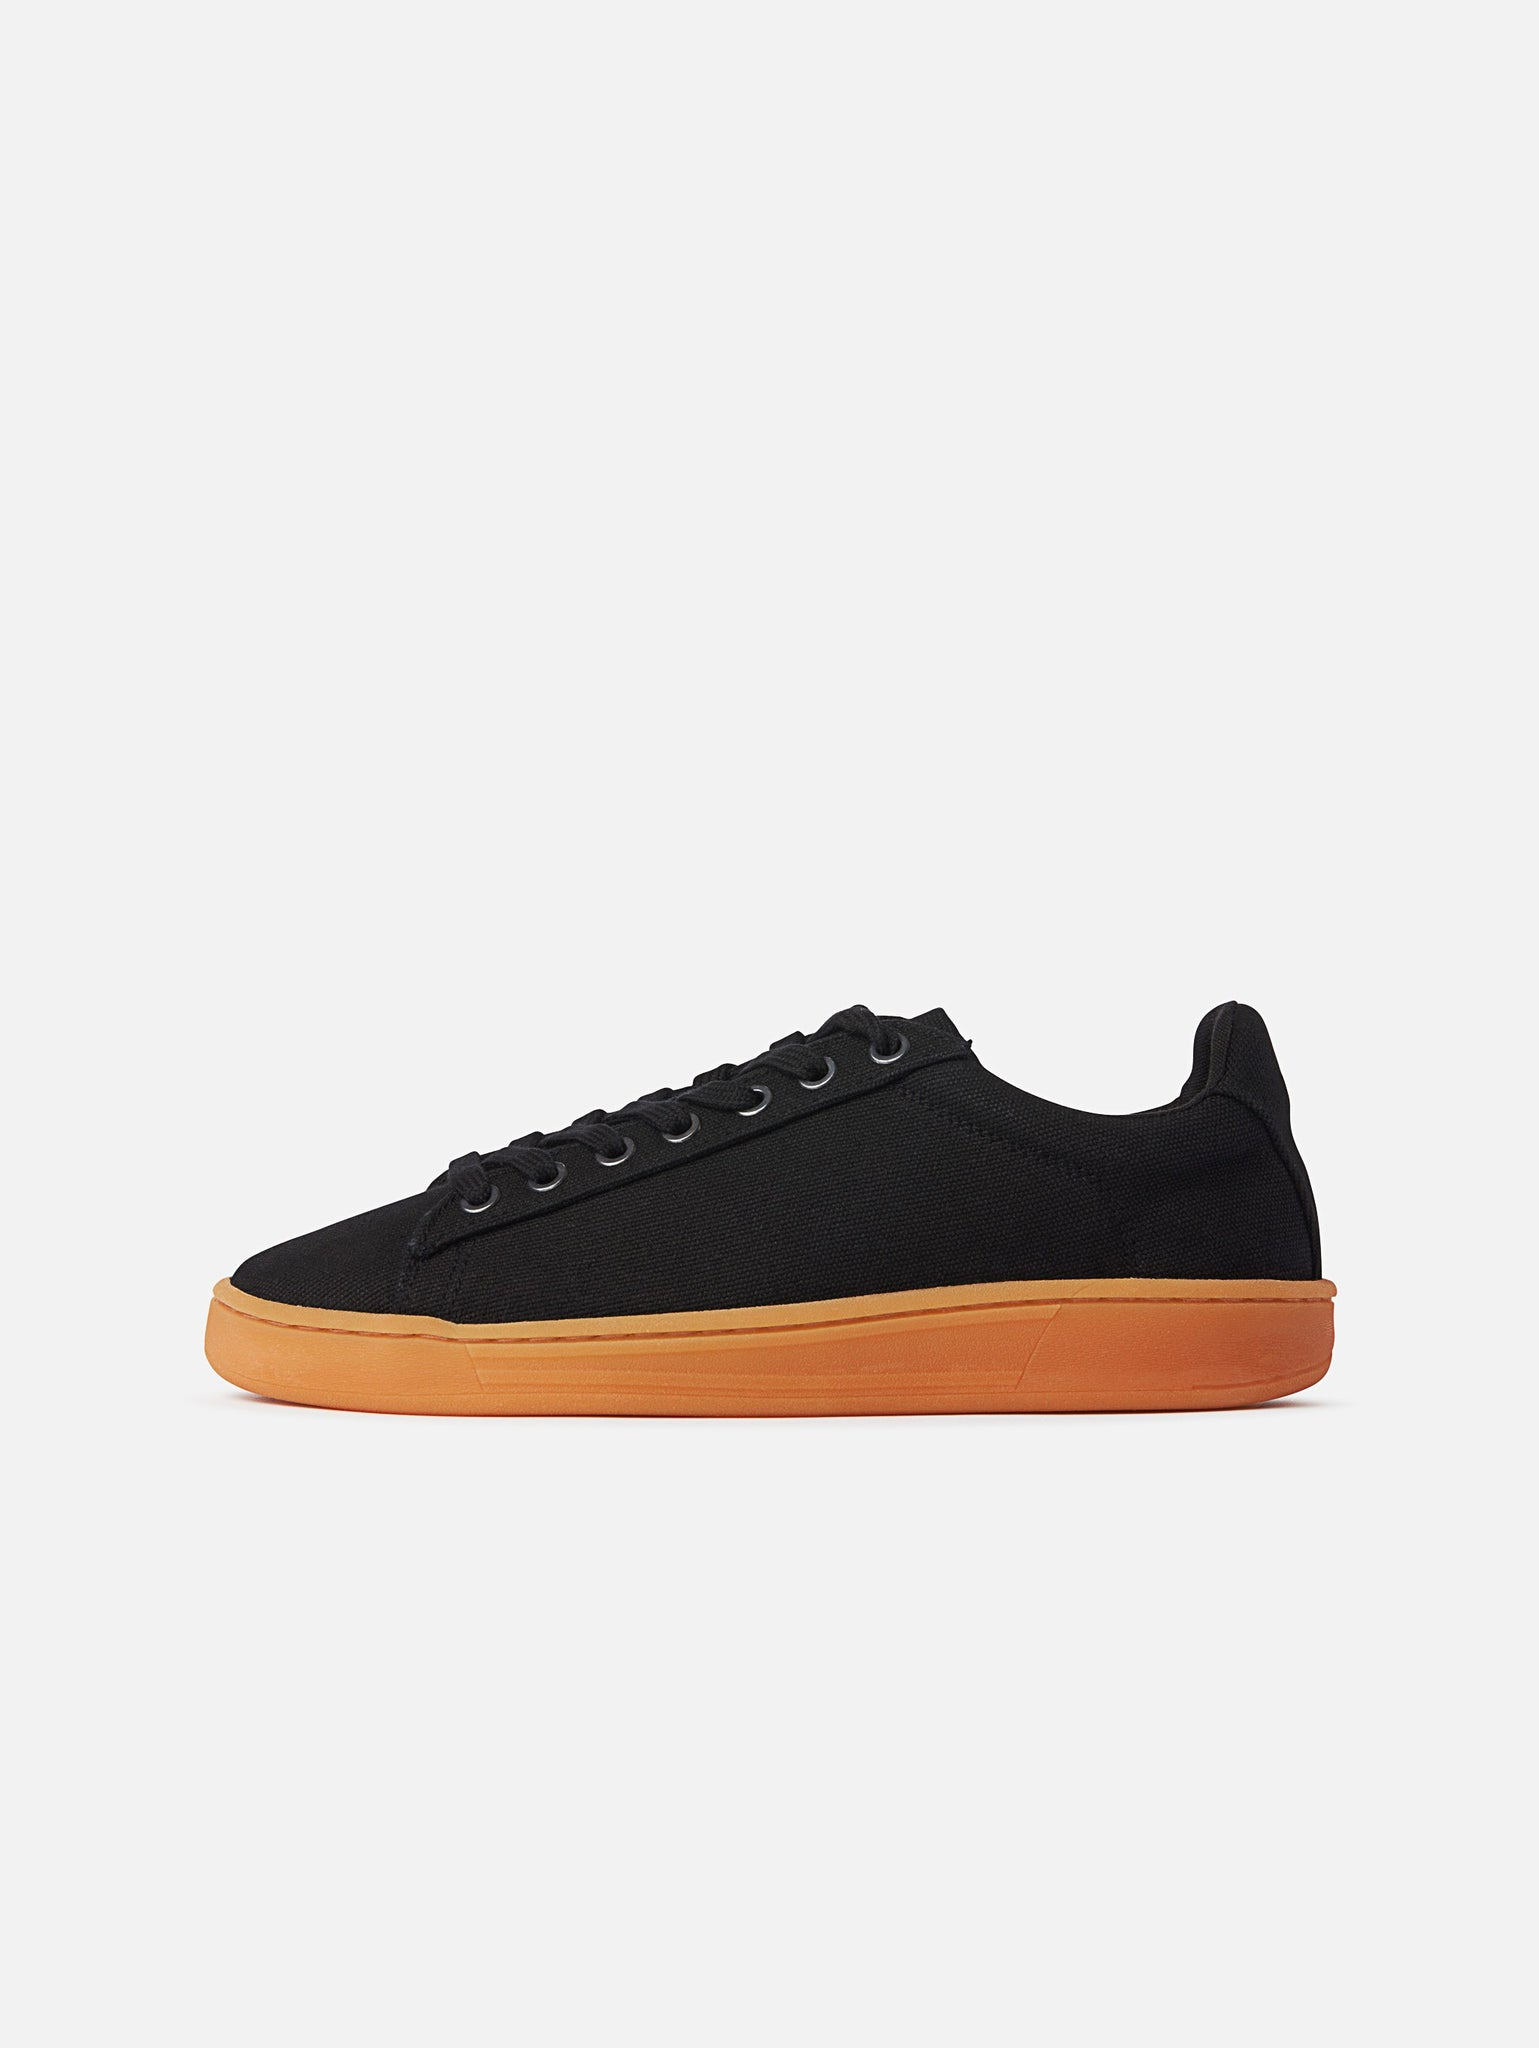 Hope - Vegan Black/Lite Canvas Shoeproduct_vendor#product_type